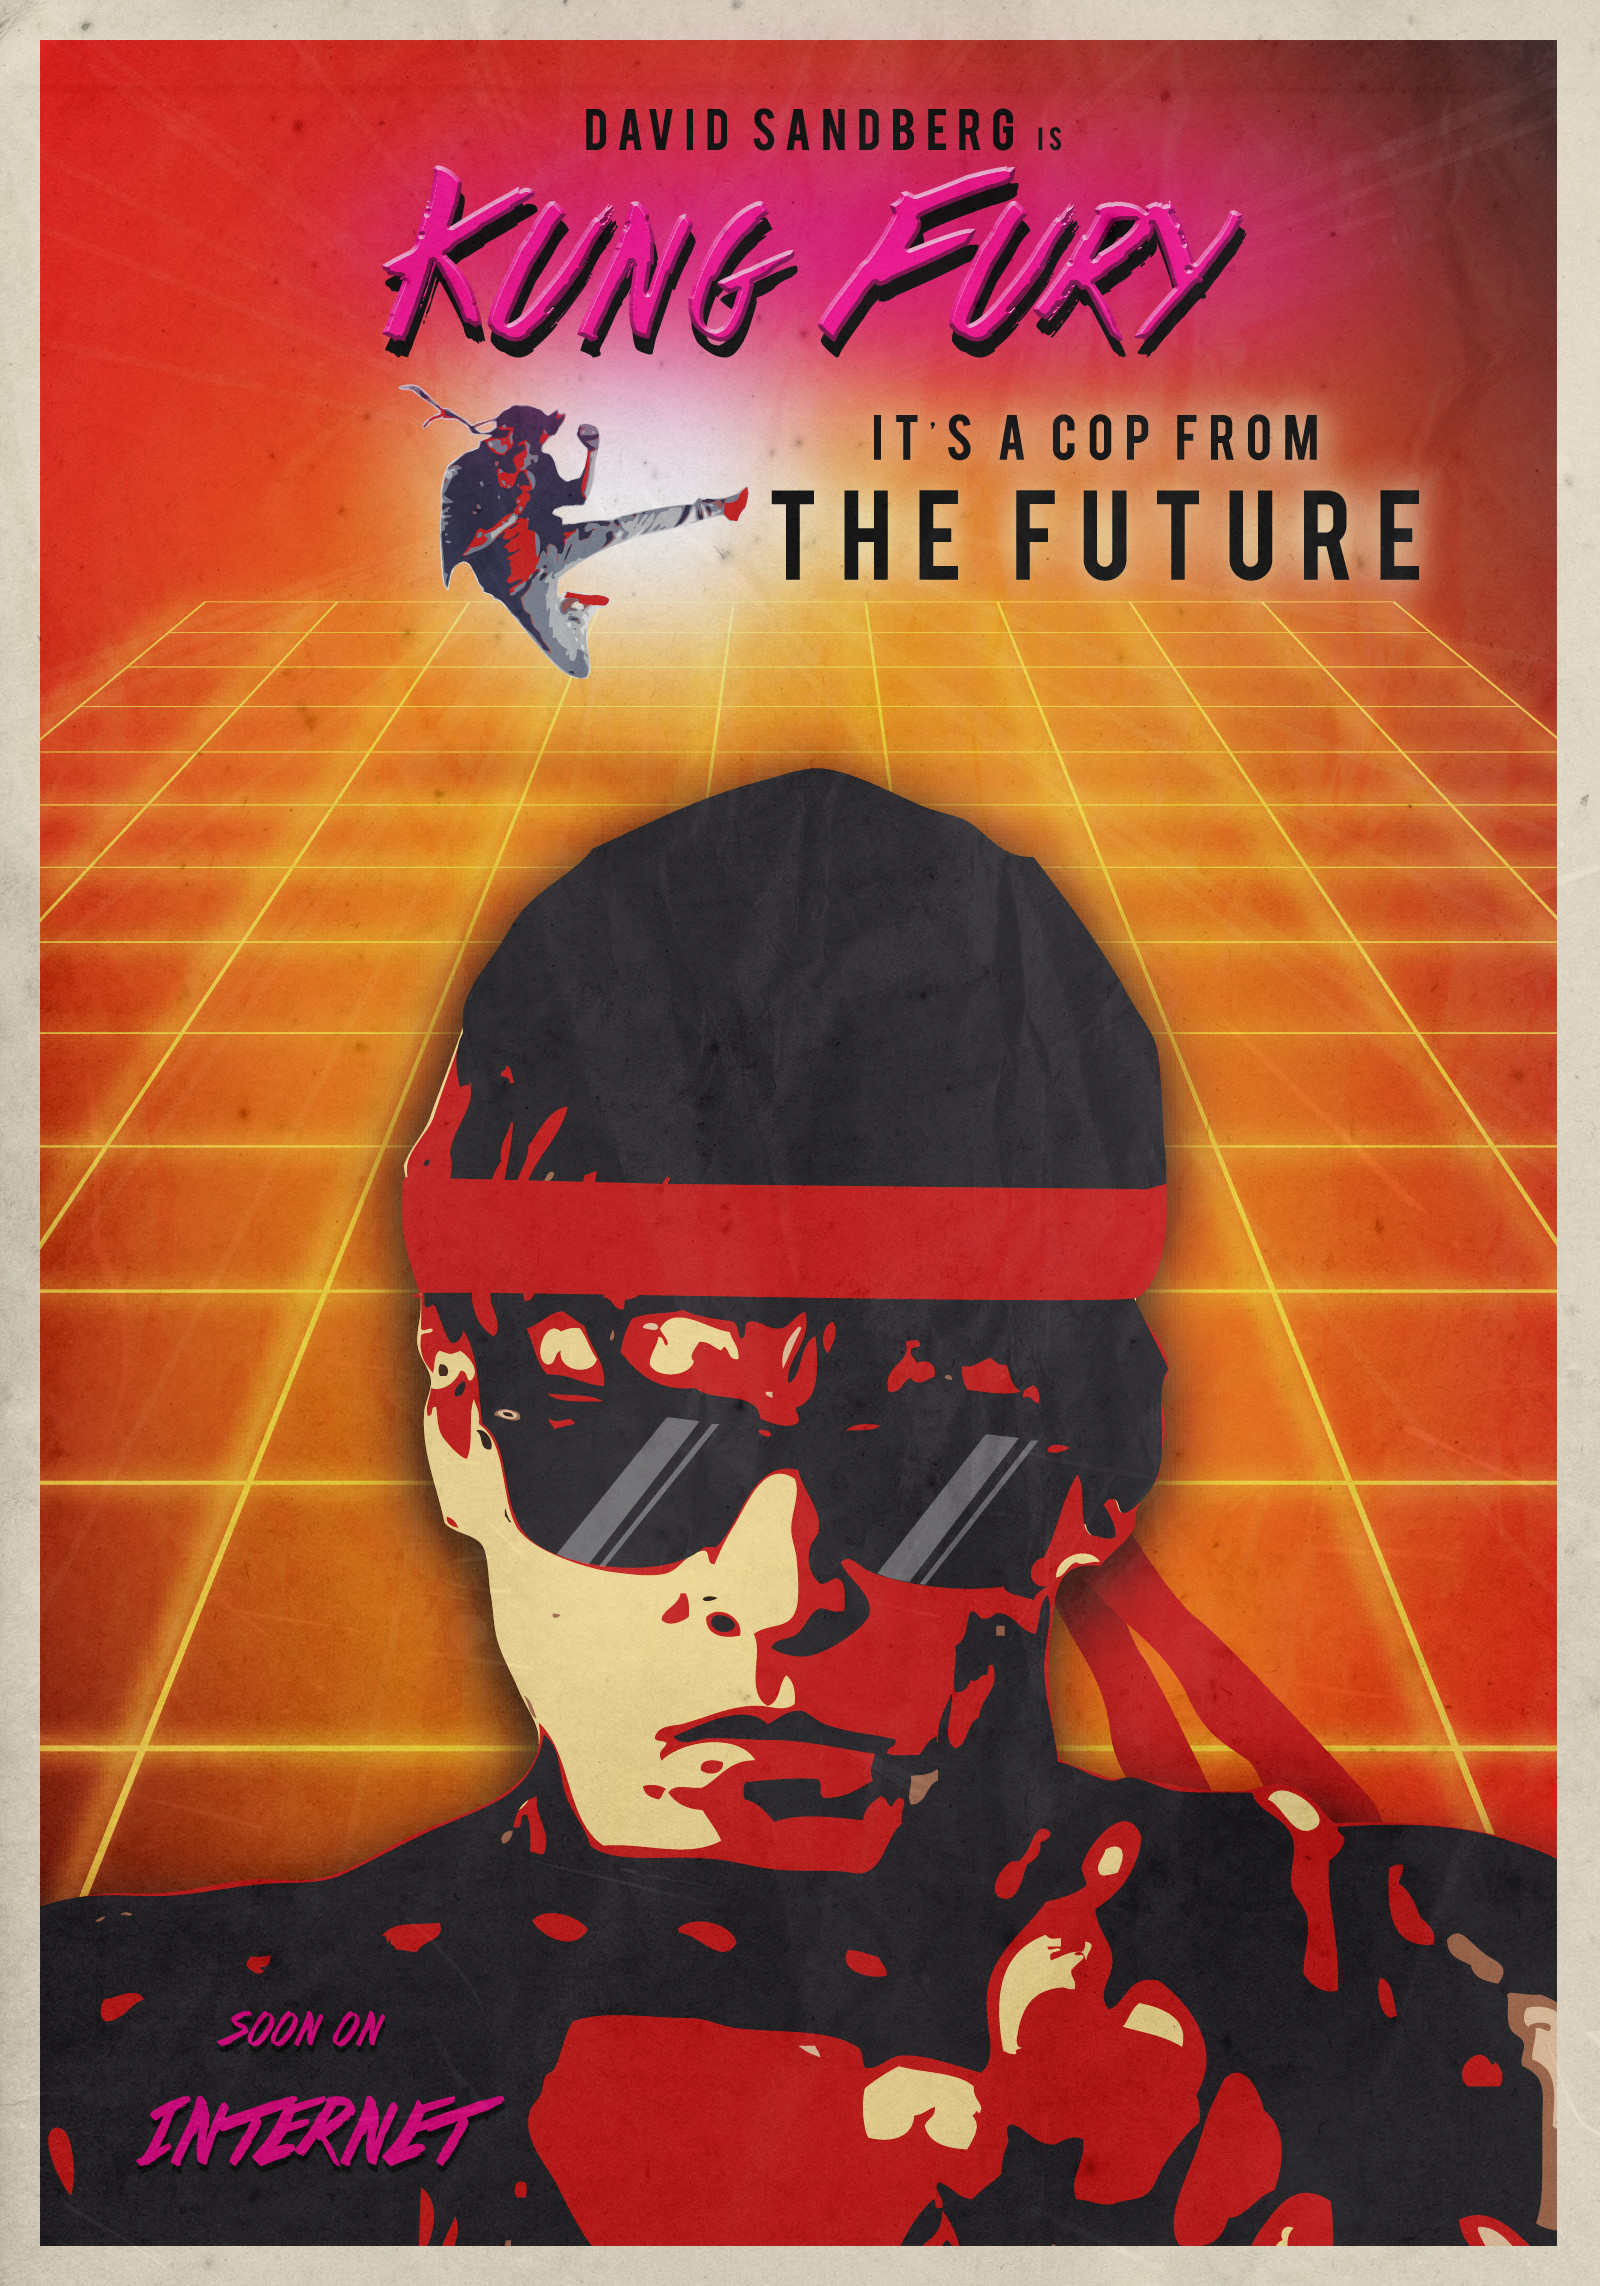 … Kung Fury – Fan Poster by Caparzofpc